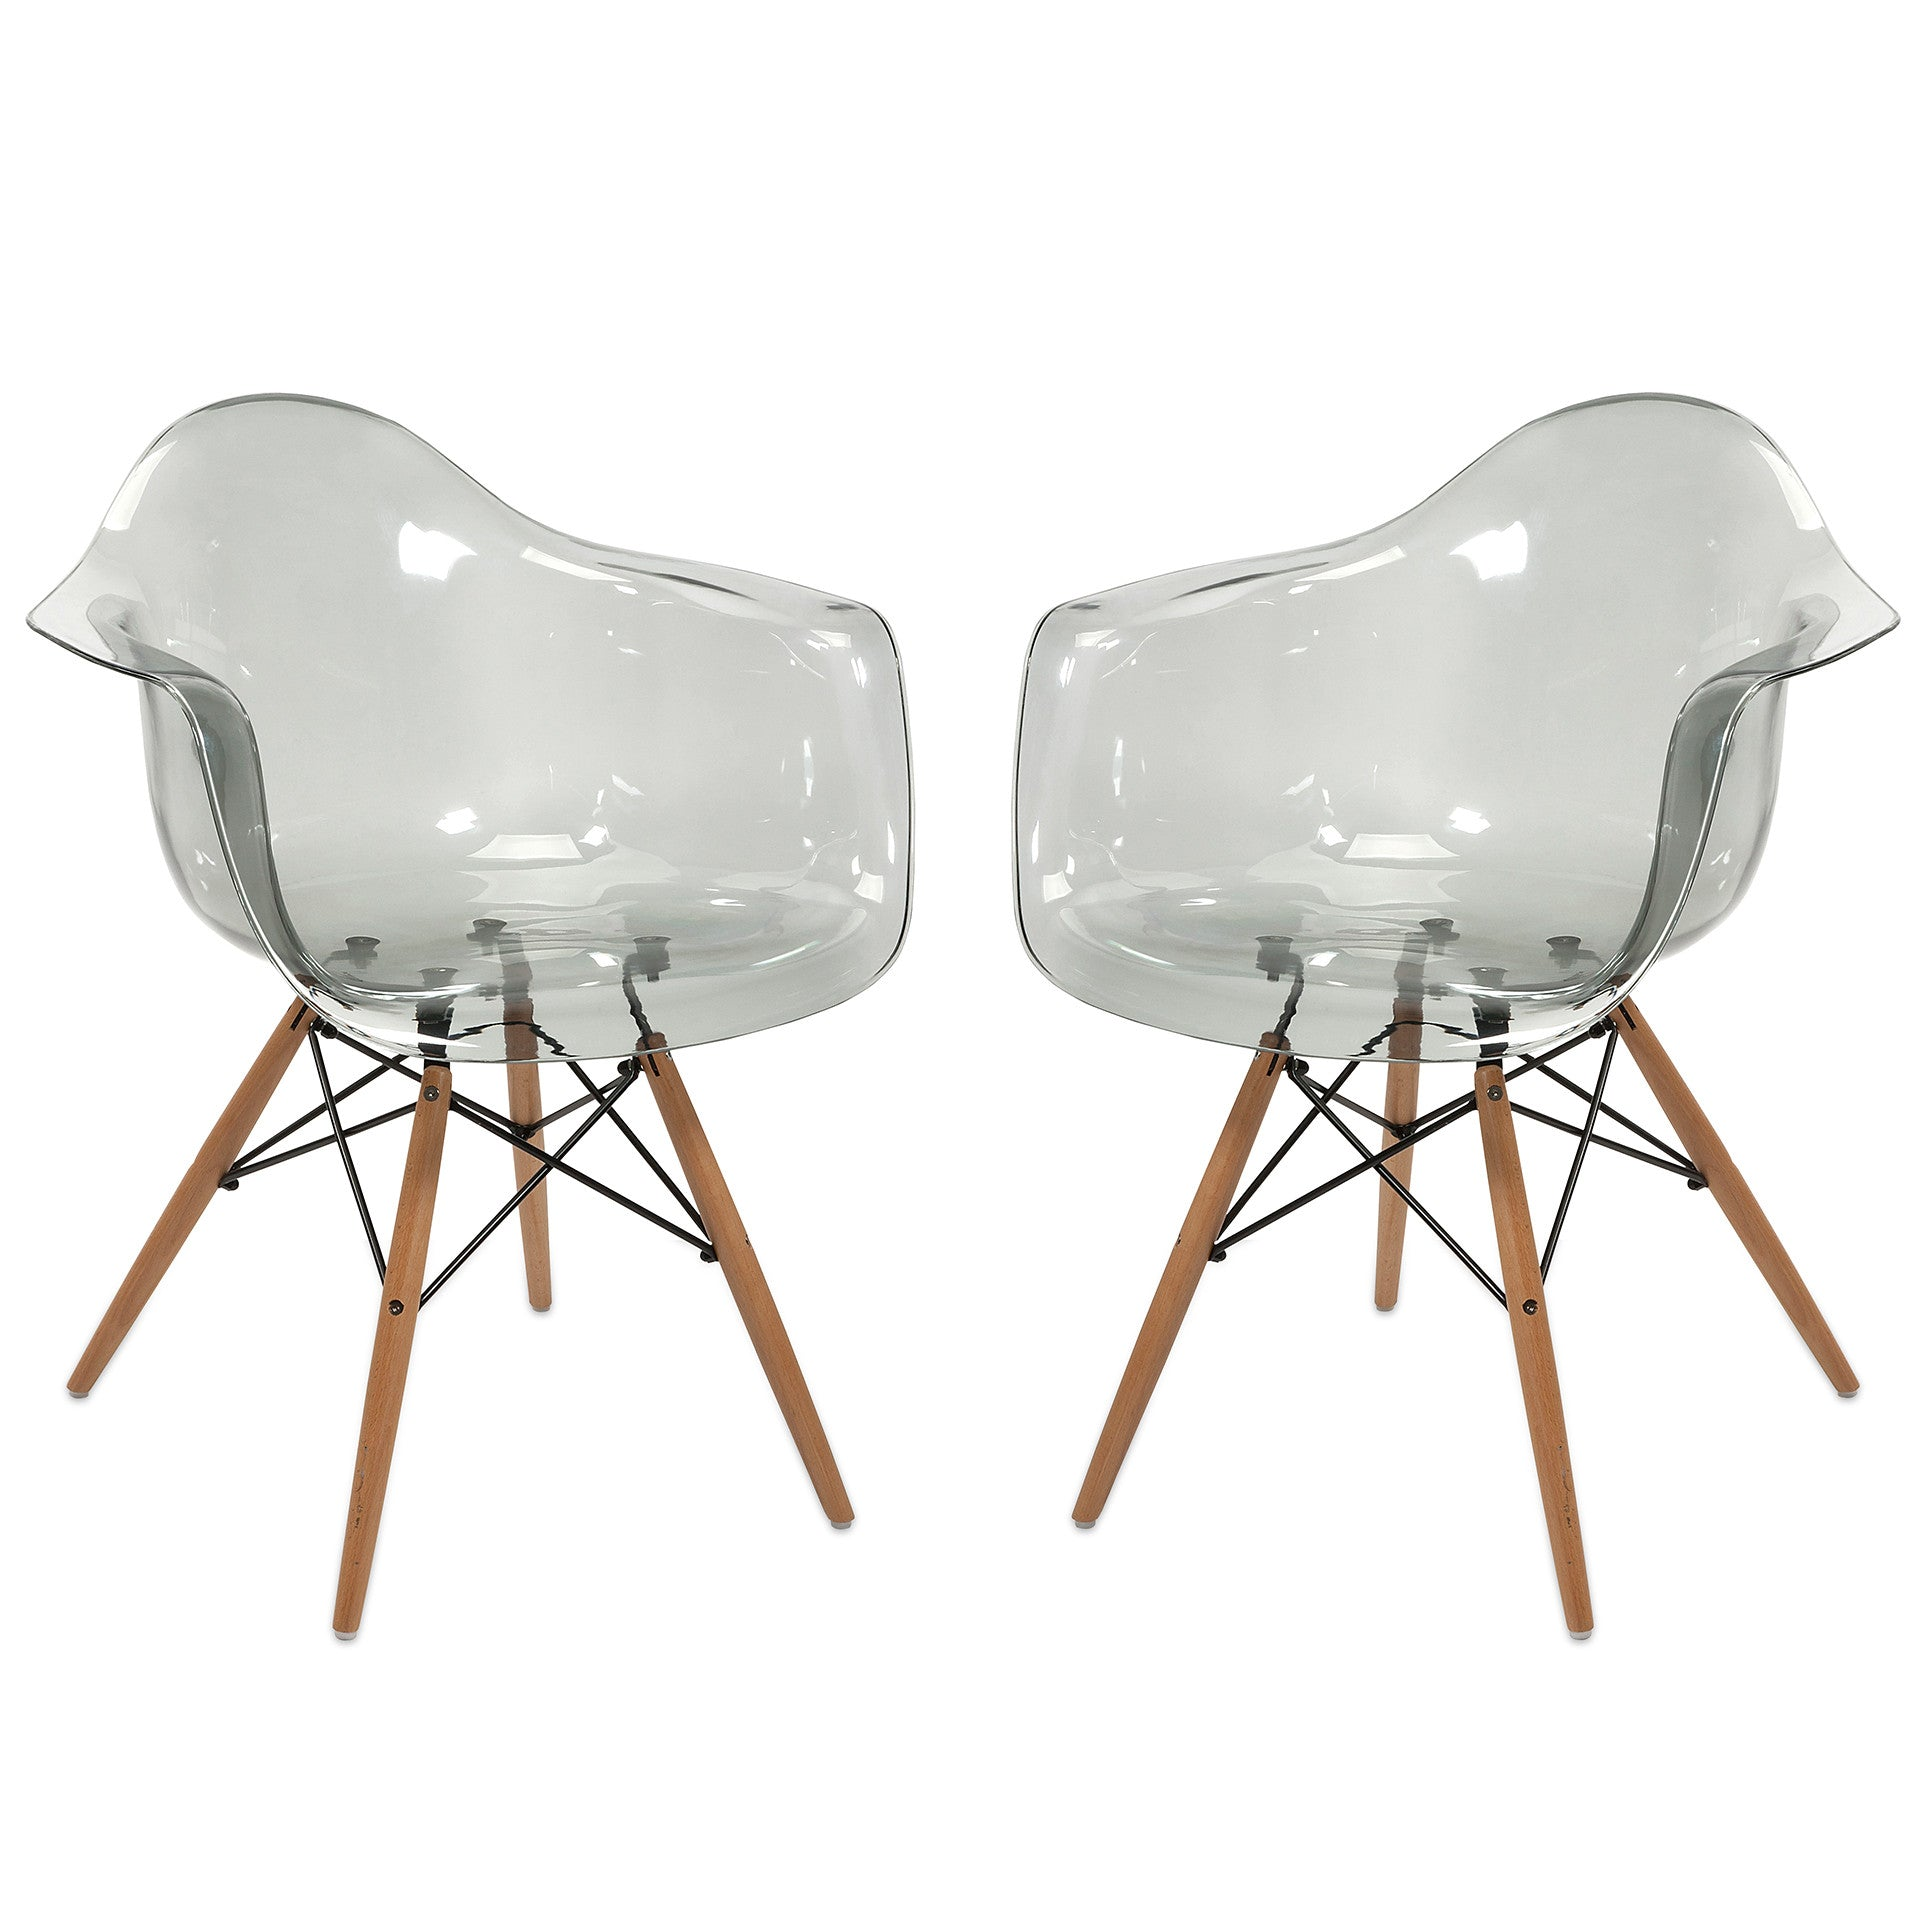 Charmant Clear Transparent Mid Century Modern Retro Wood Leg Chairs   Set Of 2